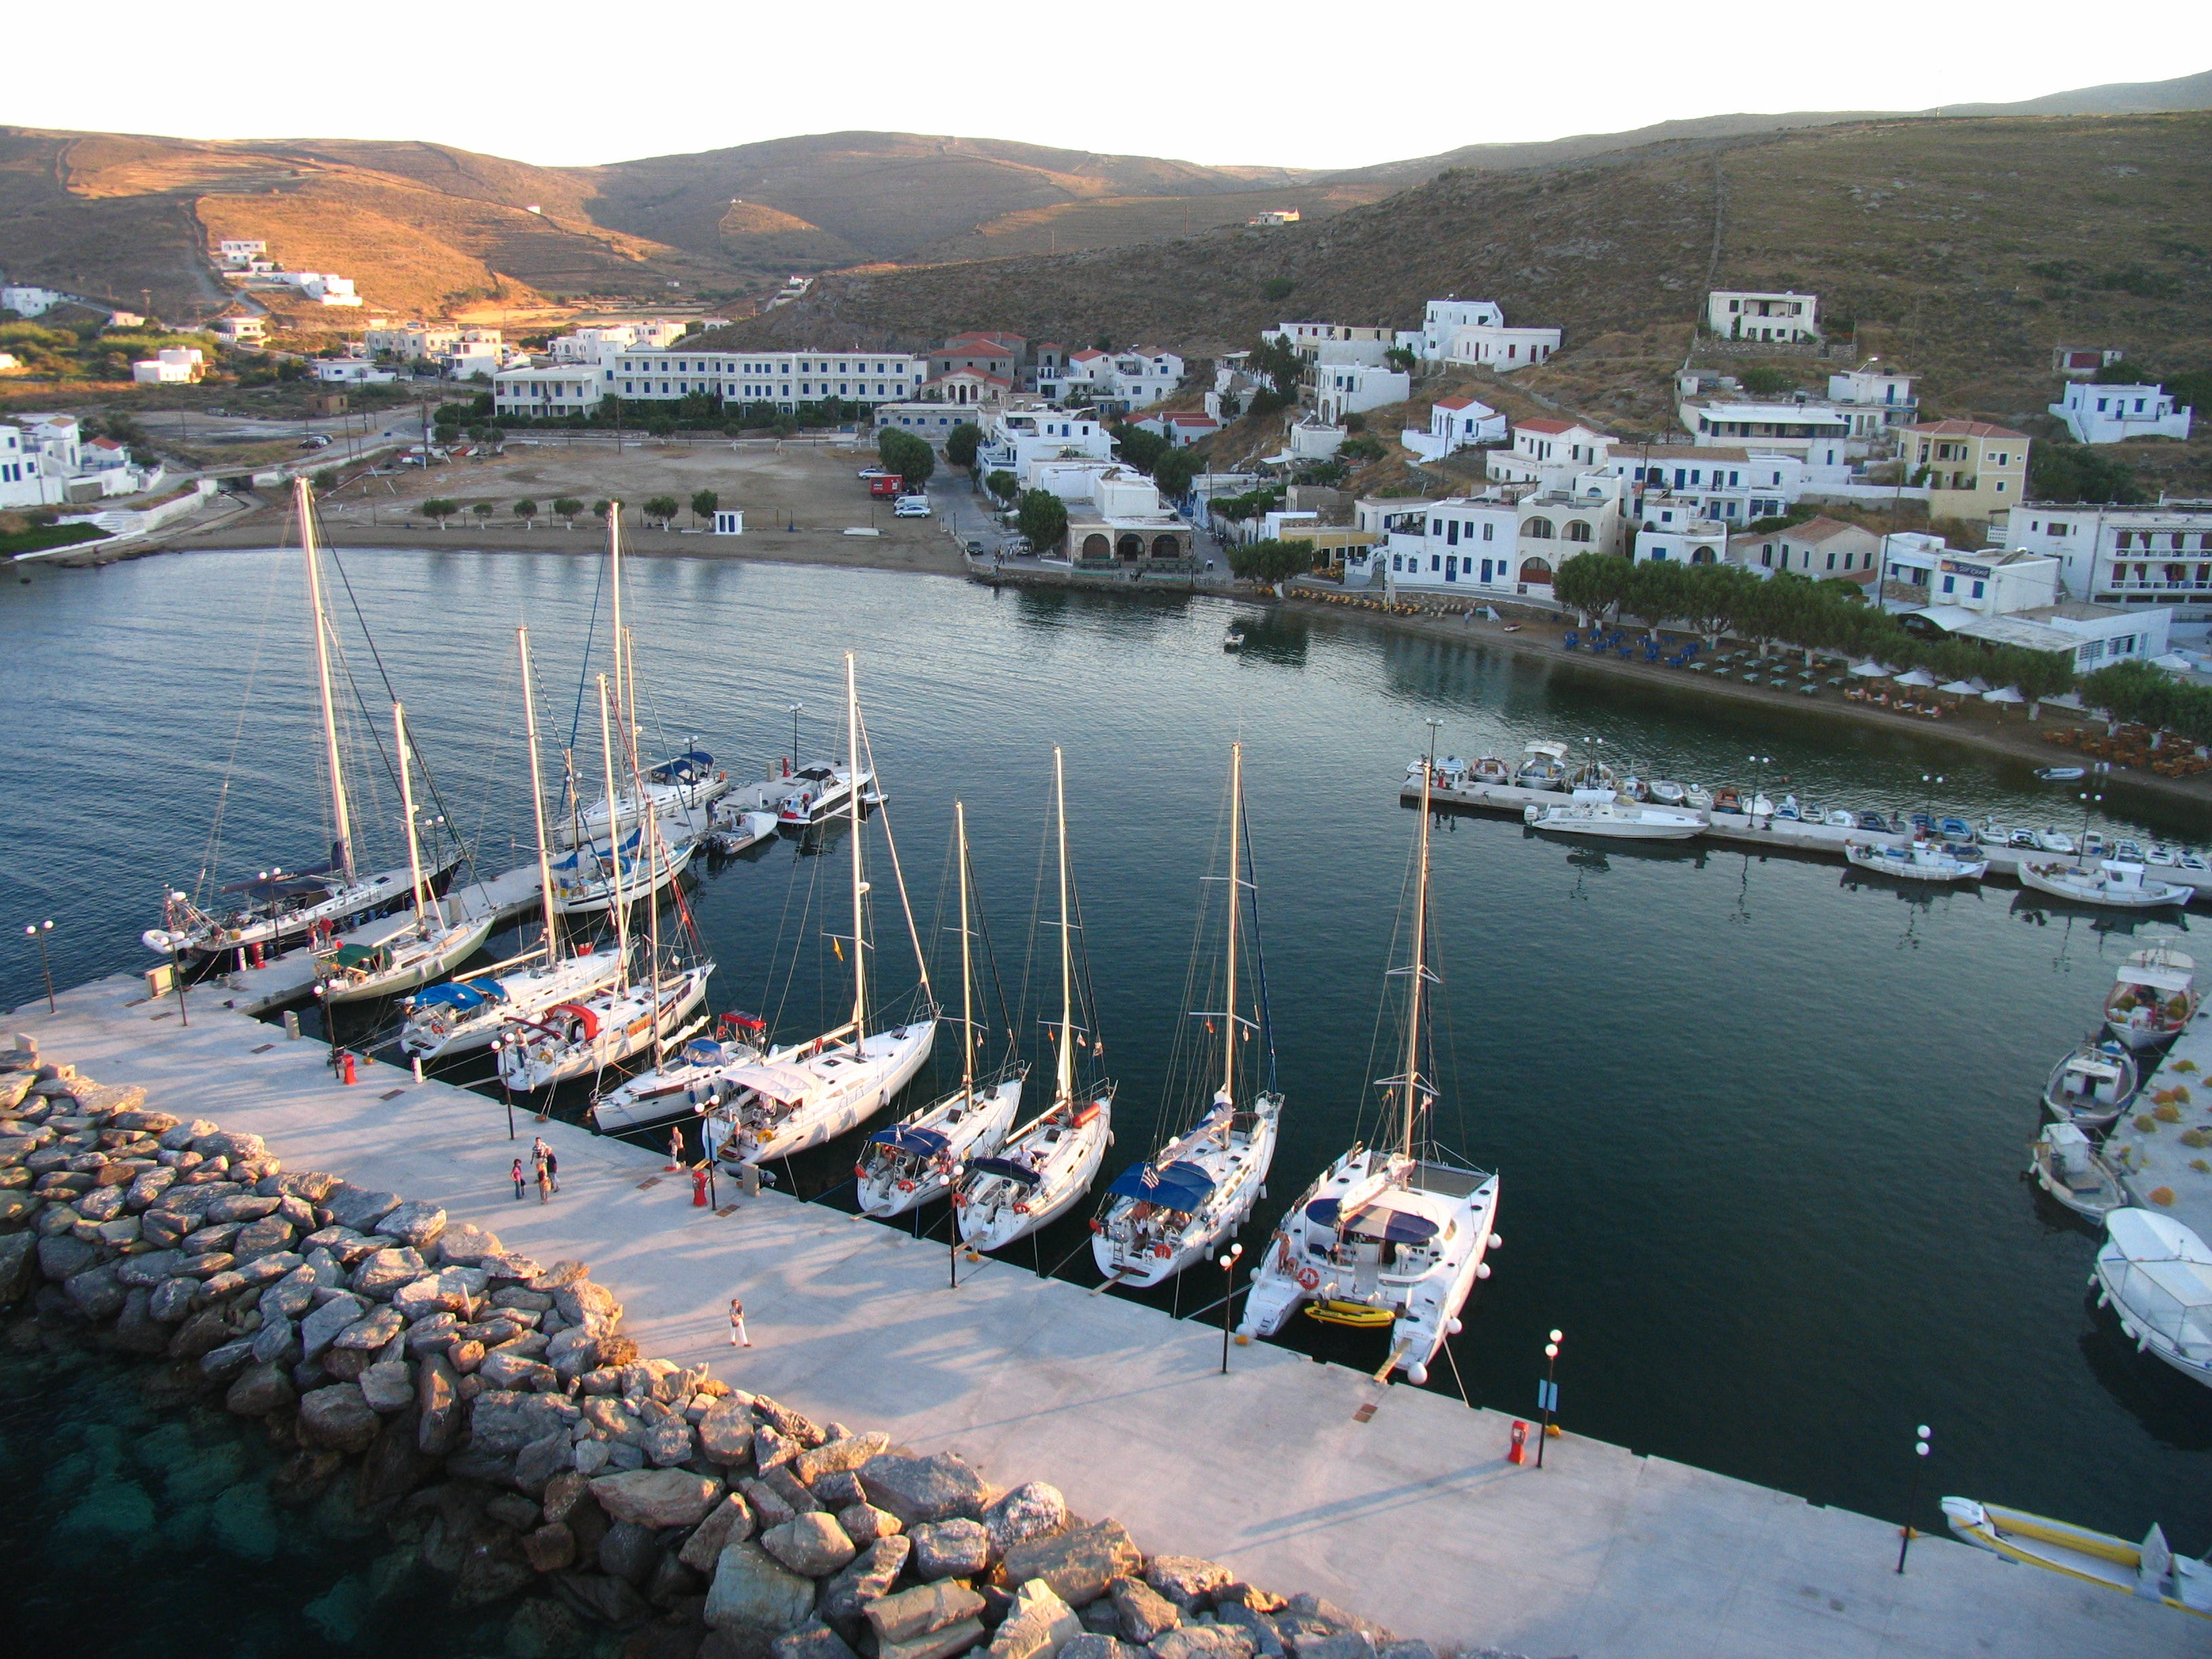 Many captains dock their boats in Loutra Village. Like many off-the-beaten-path islands of the Cyclades, the tourist season begins in mid-June and runs until mid-September.